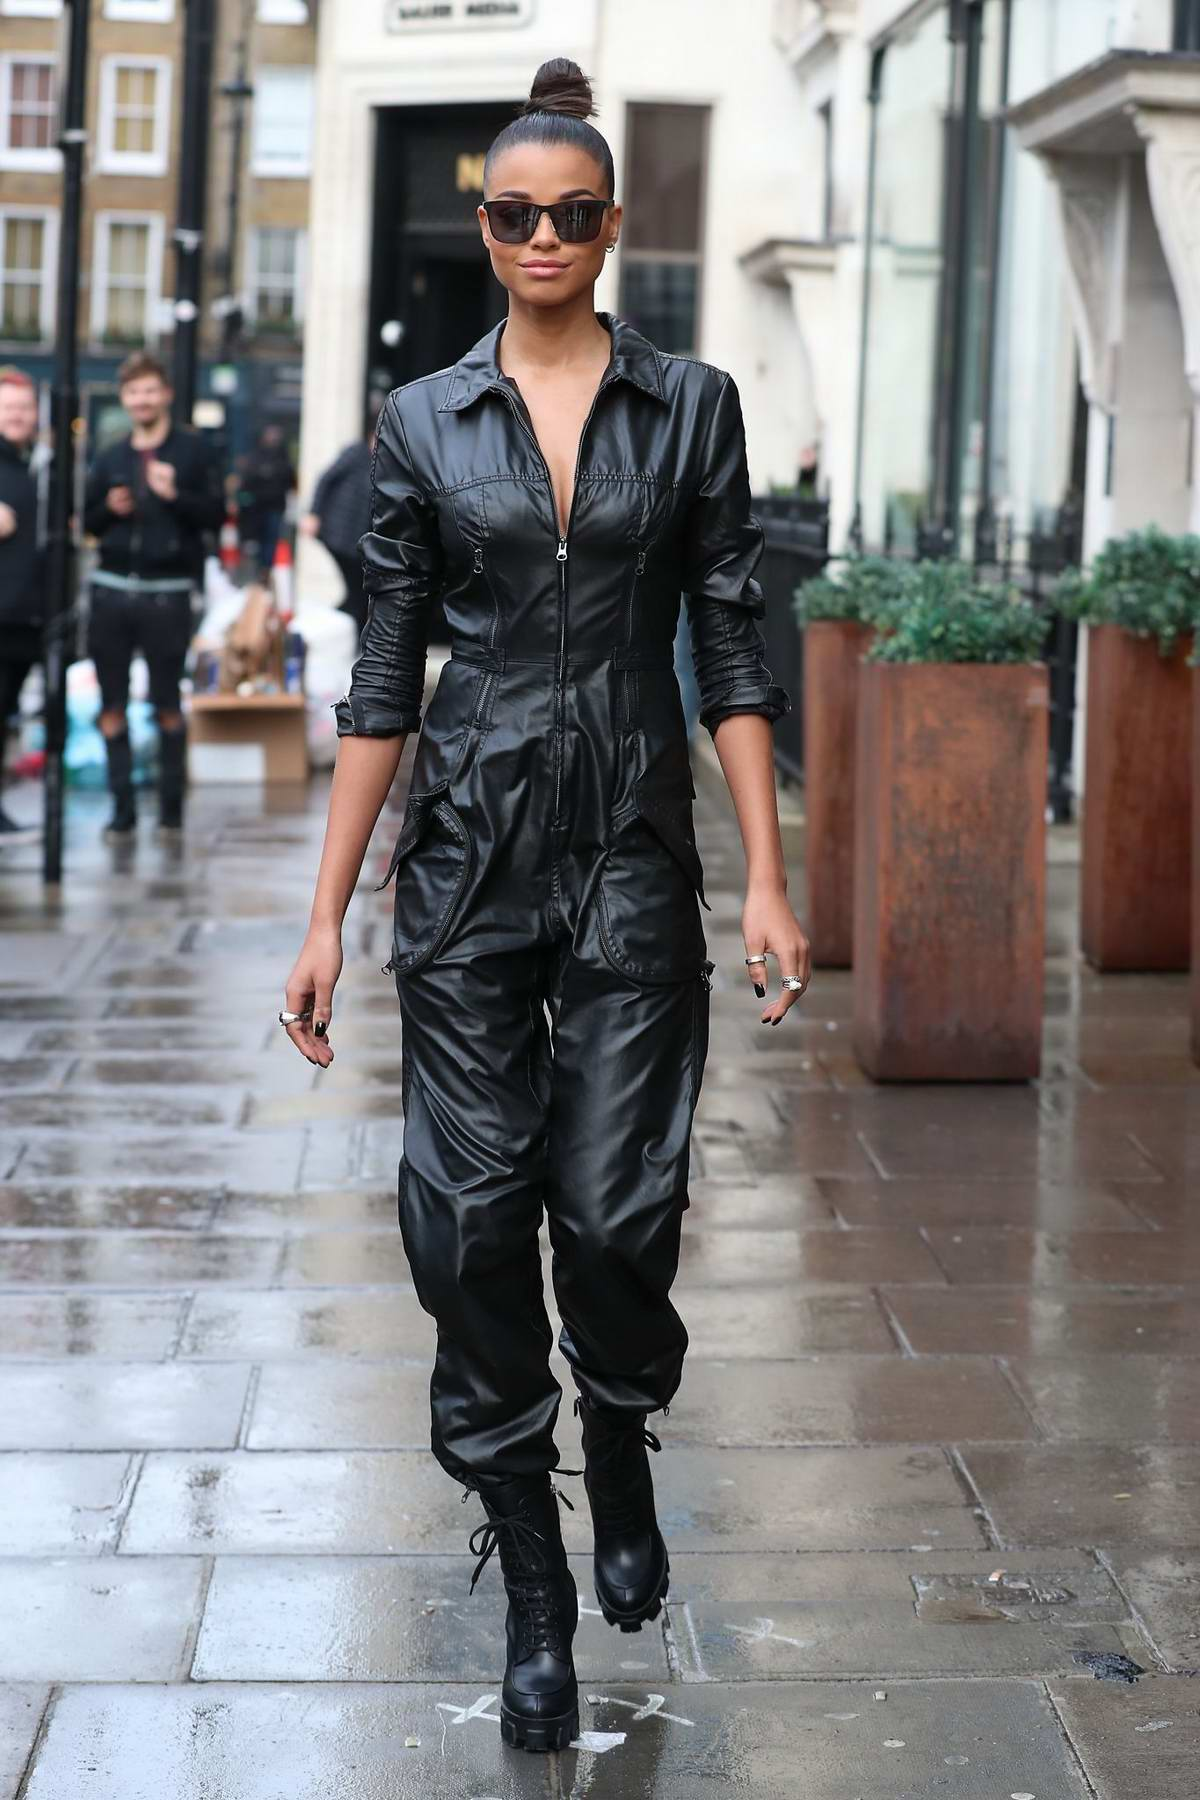 Ella Balinska looks stylish in a black leather jumpsuit as she visits KISS FM radio studios in London, UK